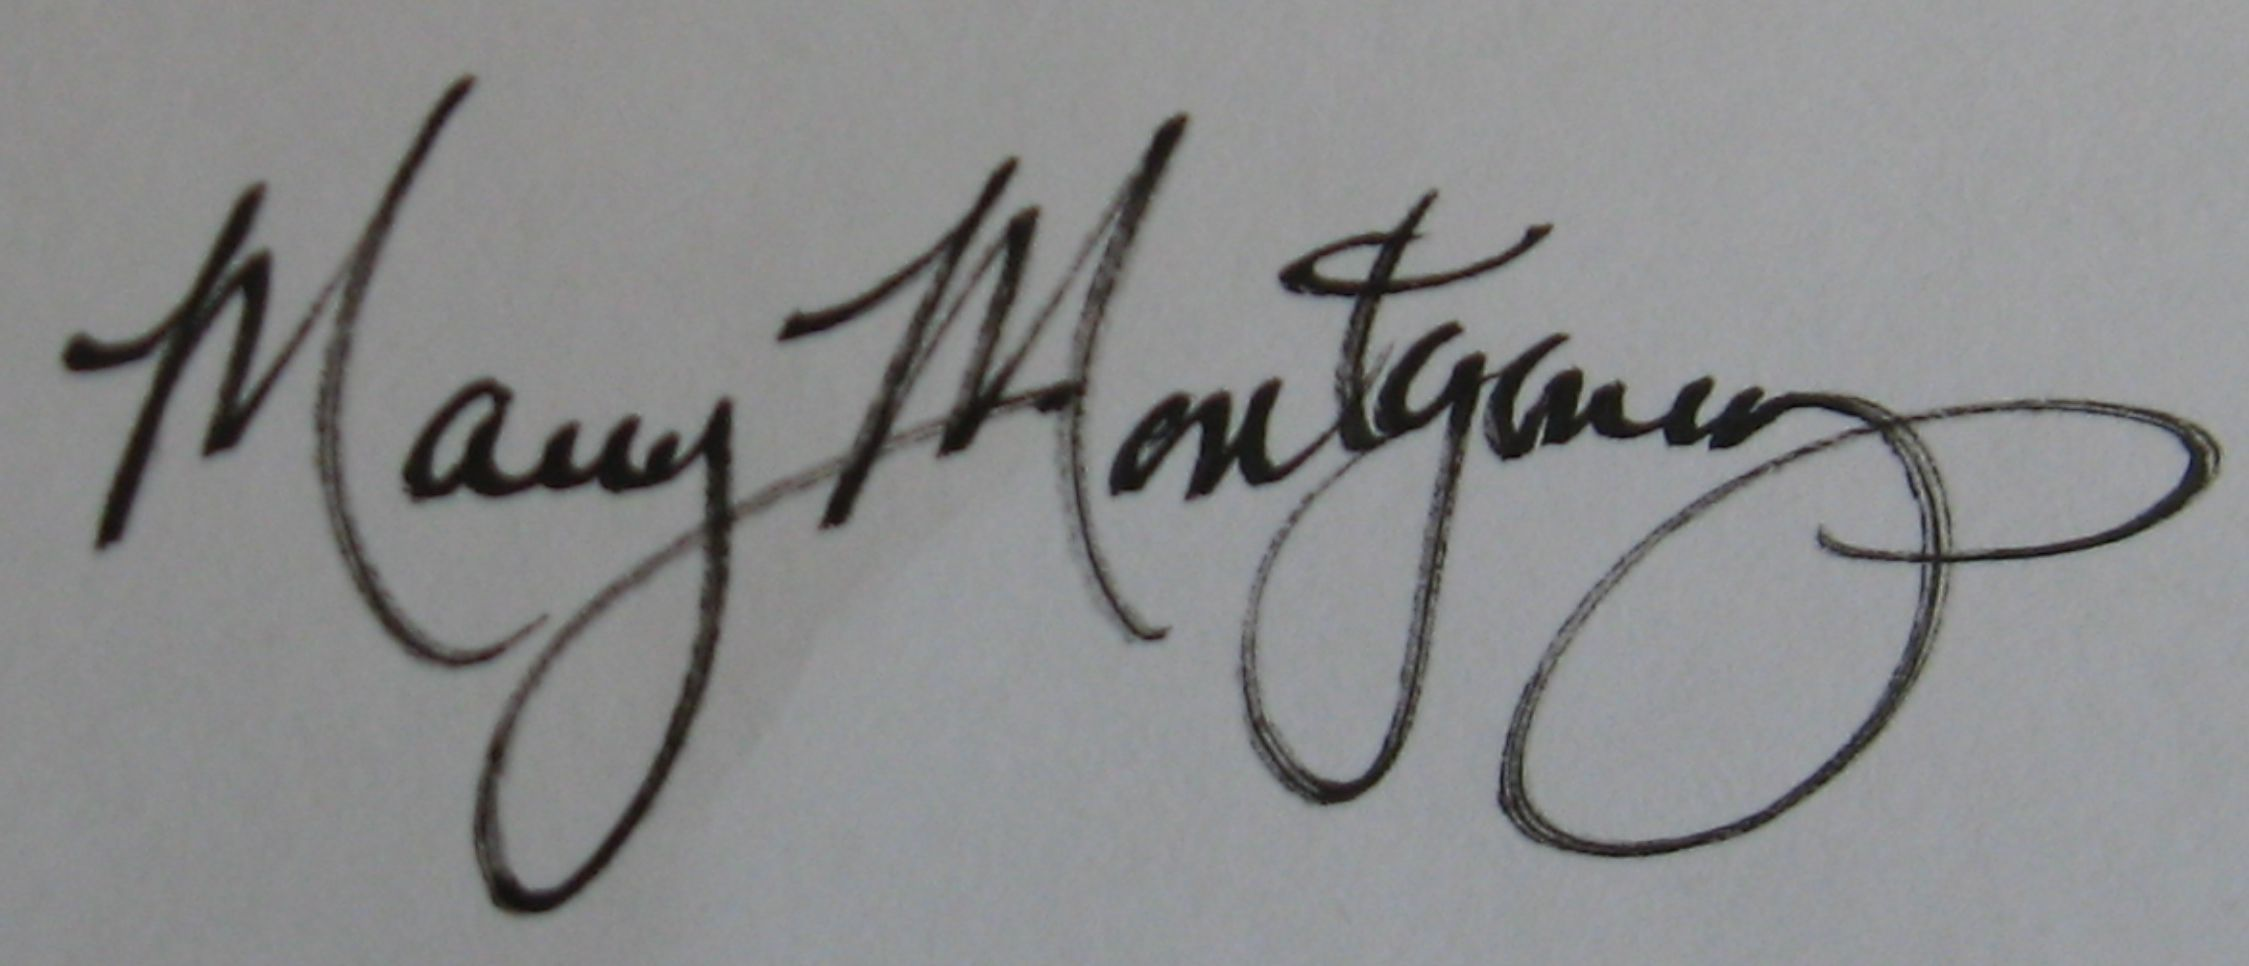 Mary Montgomery Signature